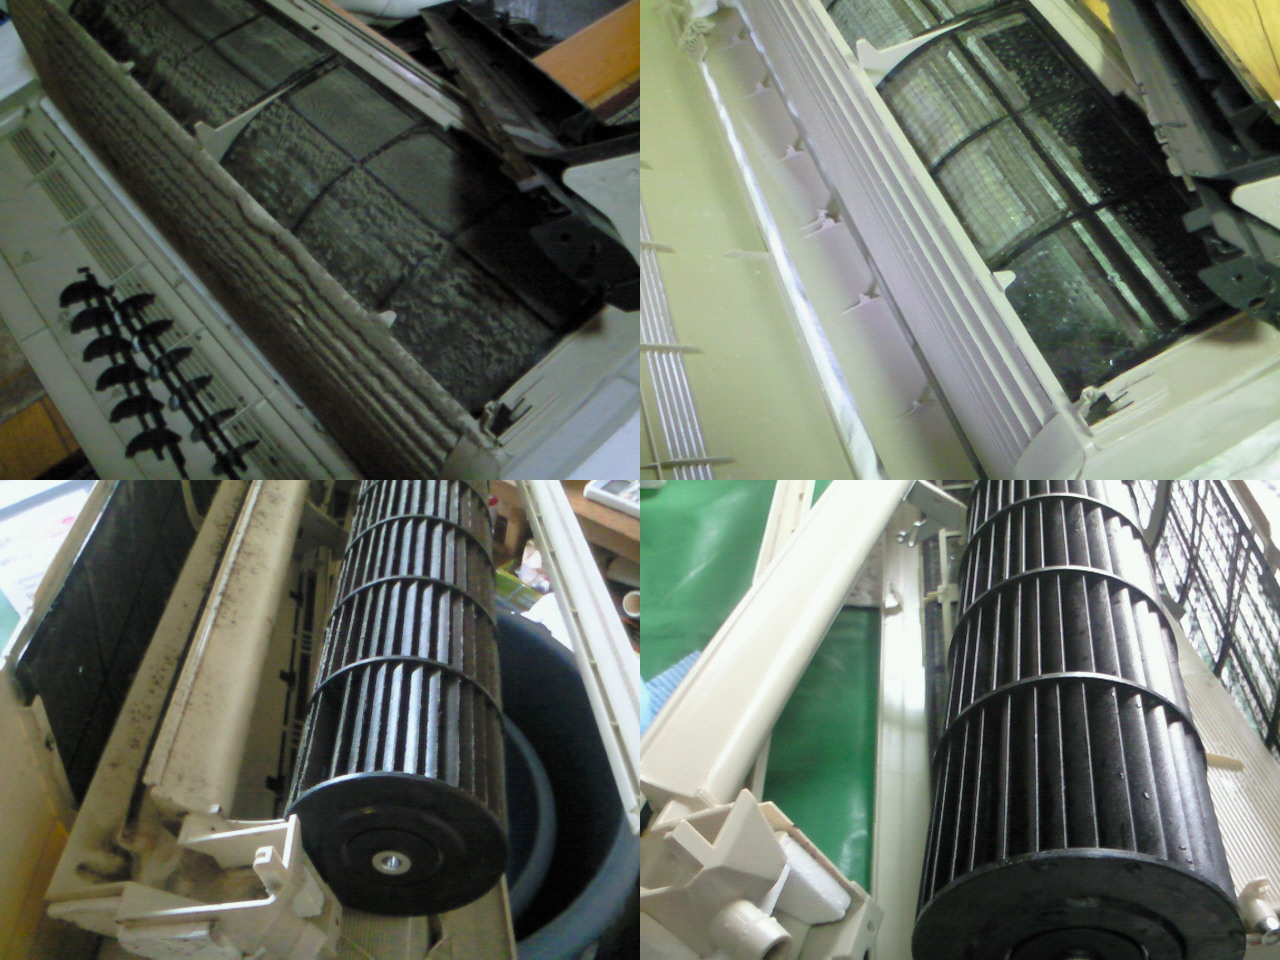 http://ajras.net/images/110610-aircon2and3.jpg